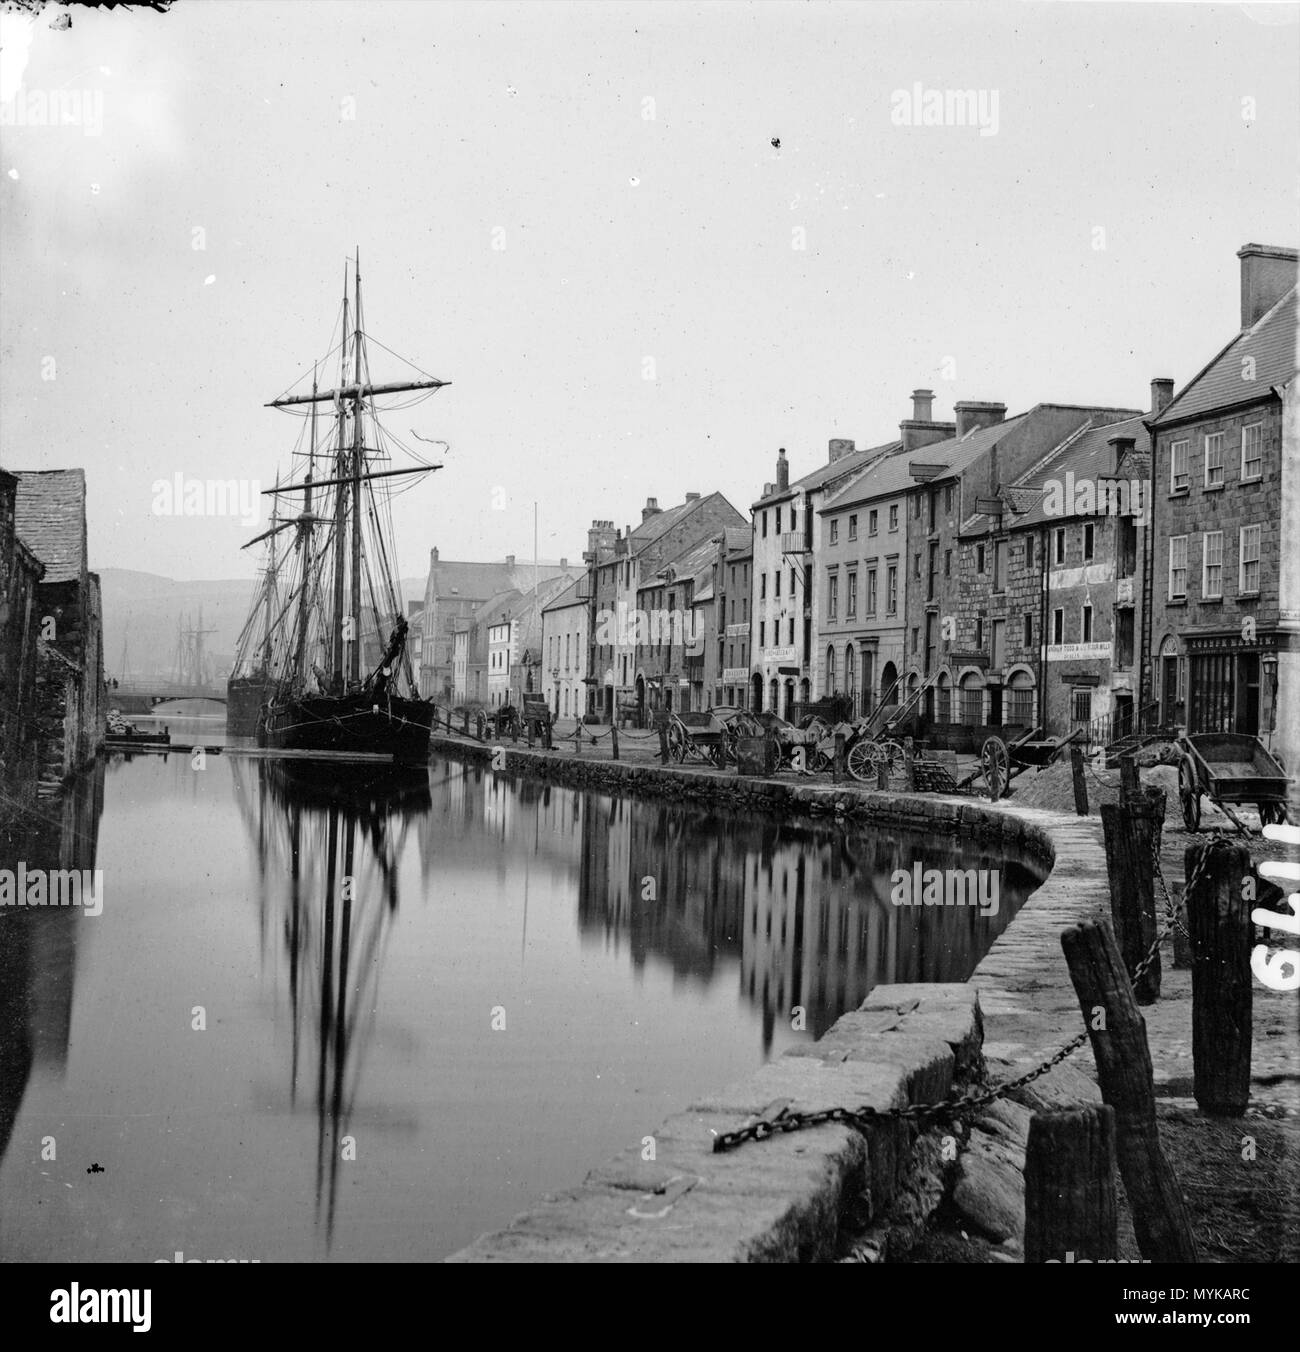 . English: Ships on the canal at Merchants Quay in Newry, alongside a nice brace of merchants' premises. Date: 1870s? (but definitely between 1860 and 1883) . 1870. Anonymous 360 Merchants Quay, Newry - Stock Image